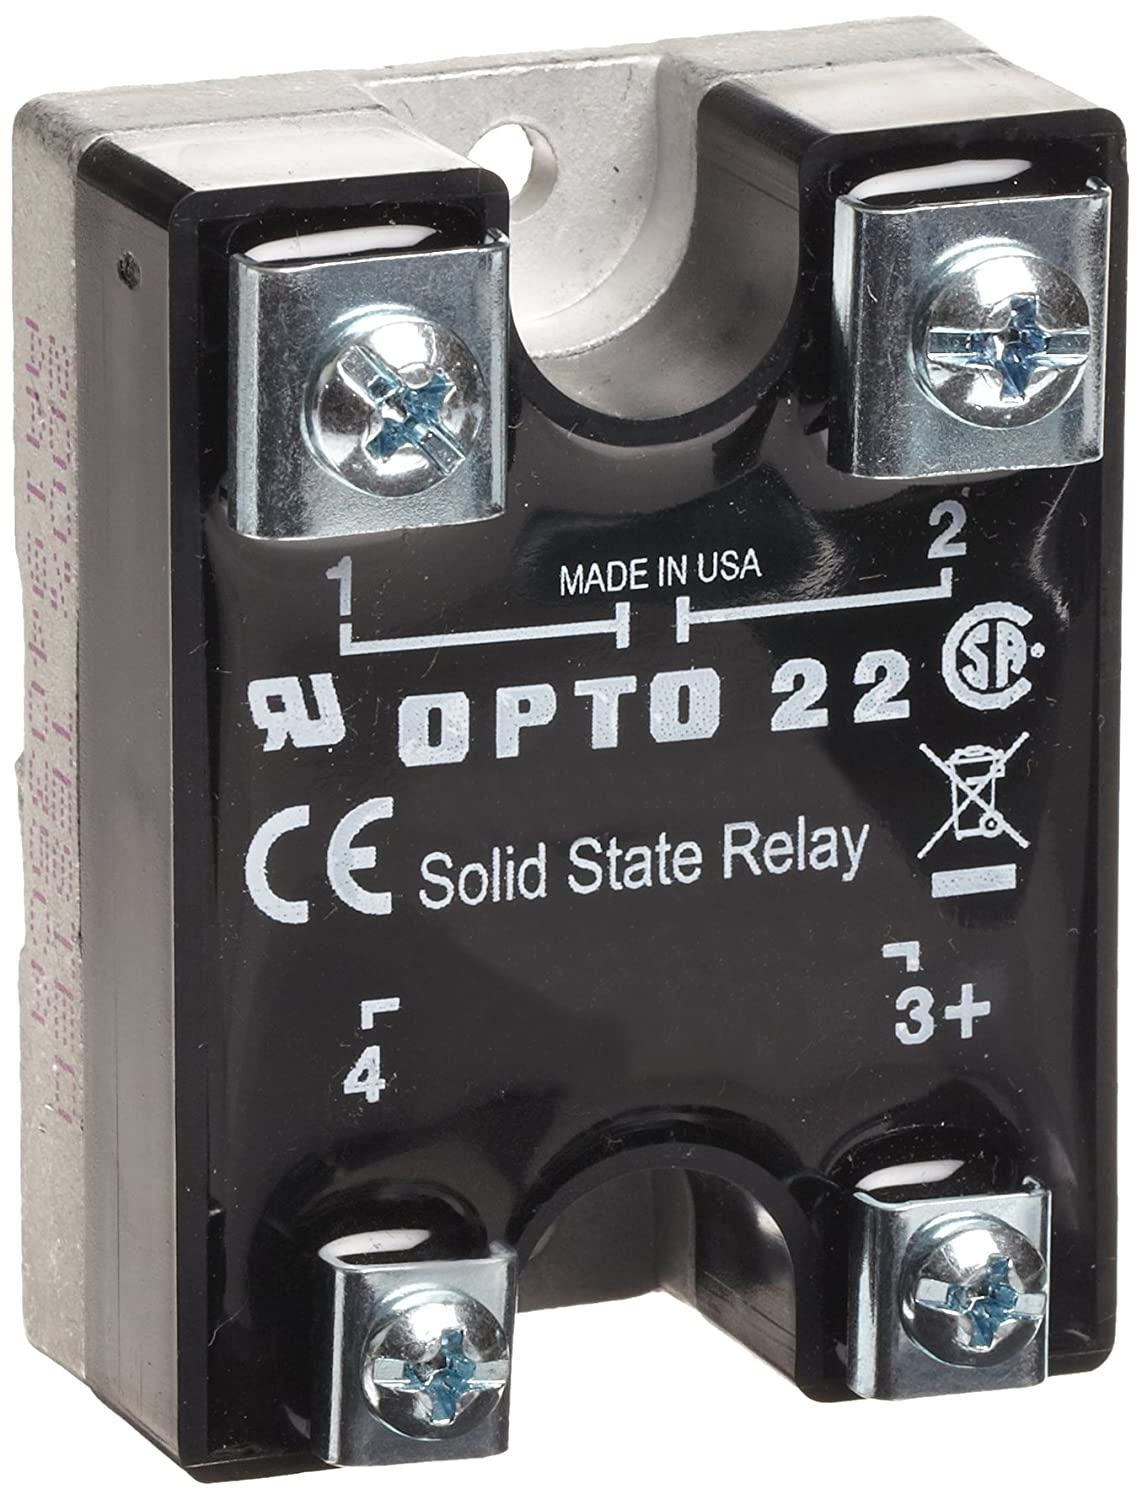 4000 V Optical Isolation 25 Amp 240 VAC 1//2 Cycle Maximum Turn-On//Off Time 25-65 Hz Operating Frequency Opto 22 240D25 DC Control Solid State Relay